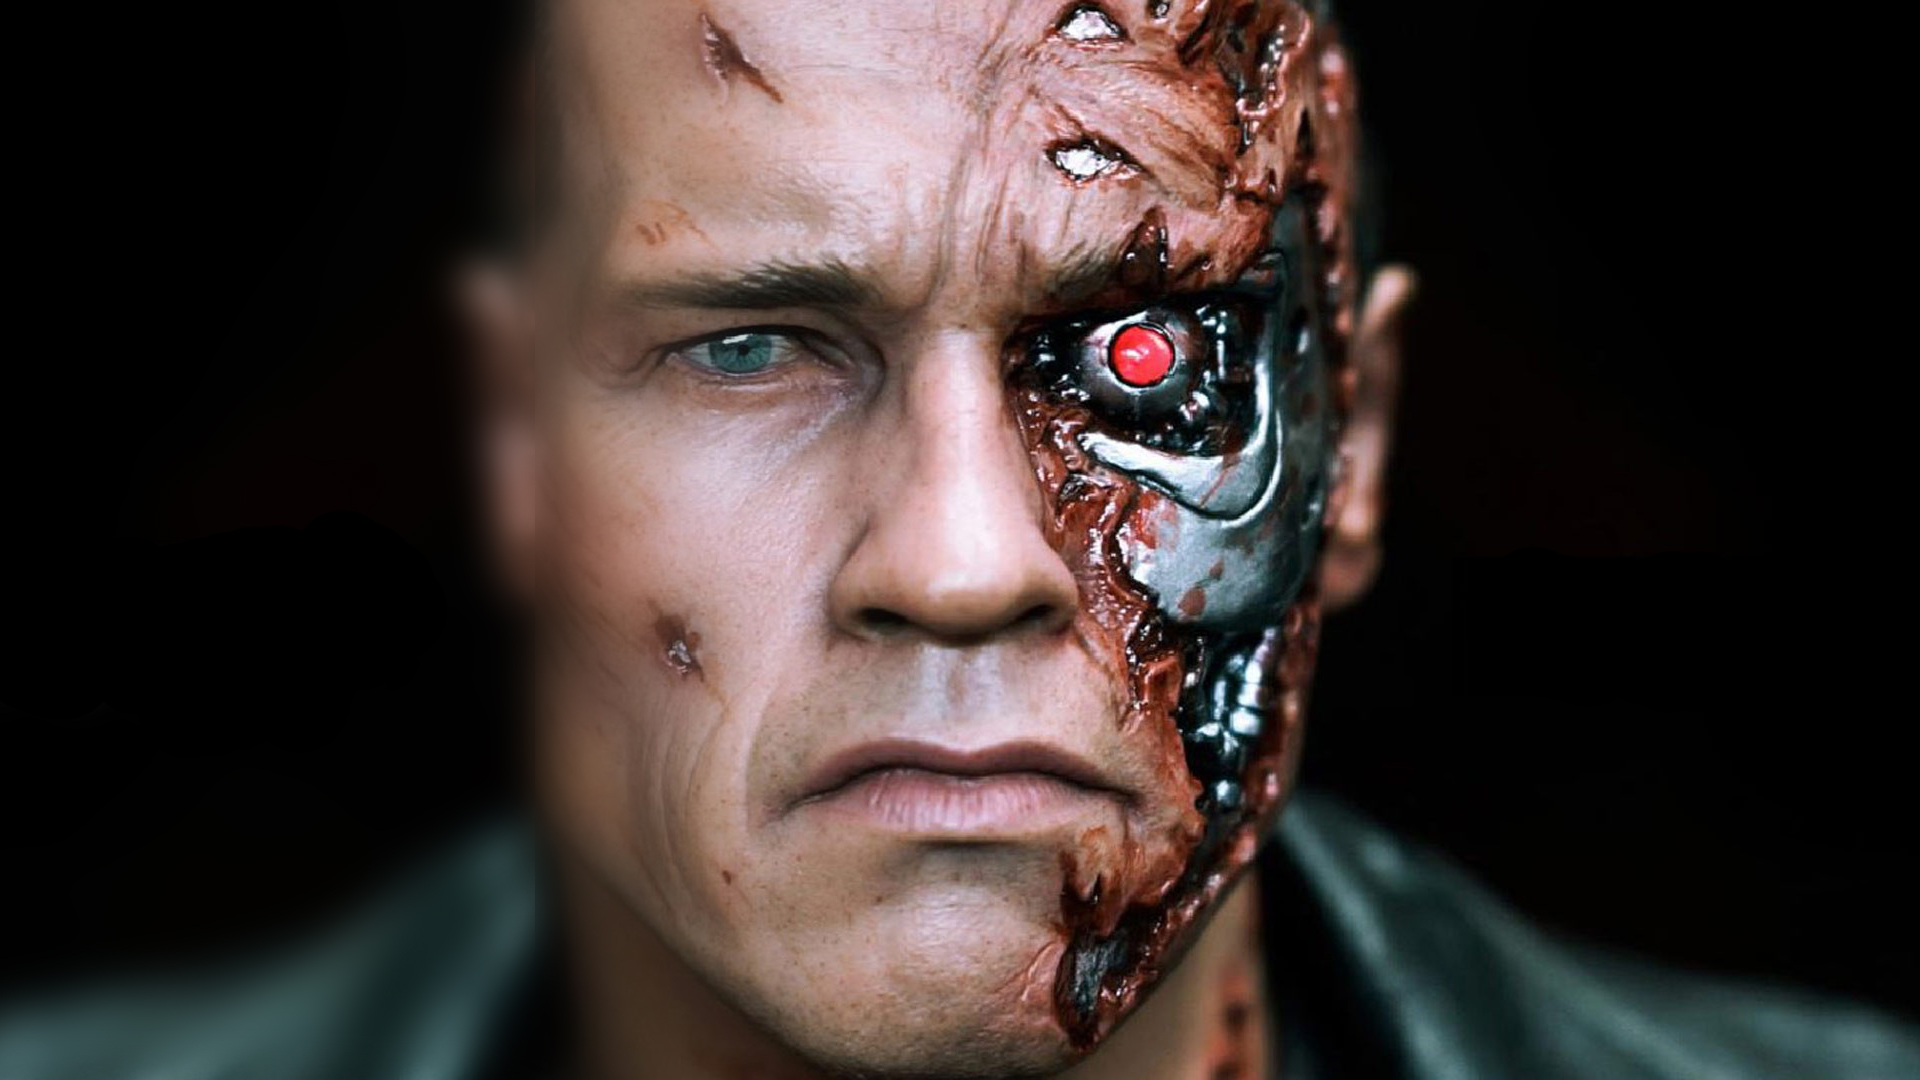 https://s3.amazonaws.com/arc-wordpress-client-uploads/infobae-wp/wp-content/uploads/2017/07/28095332/terminator.jpg